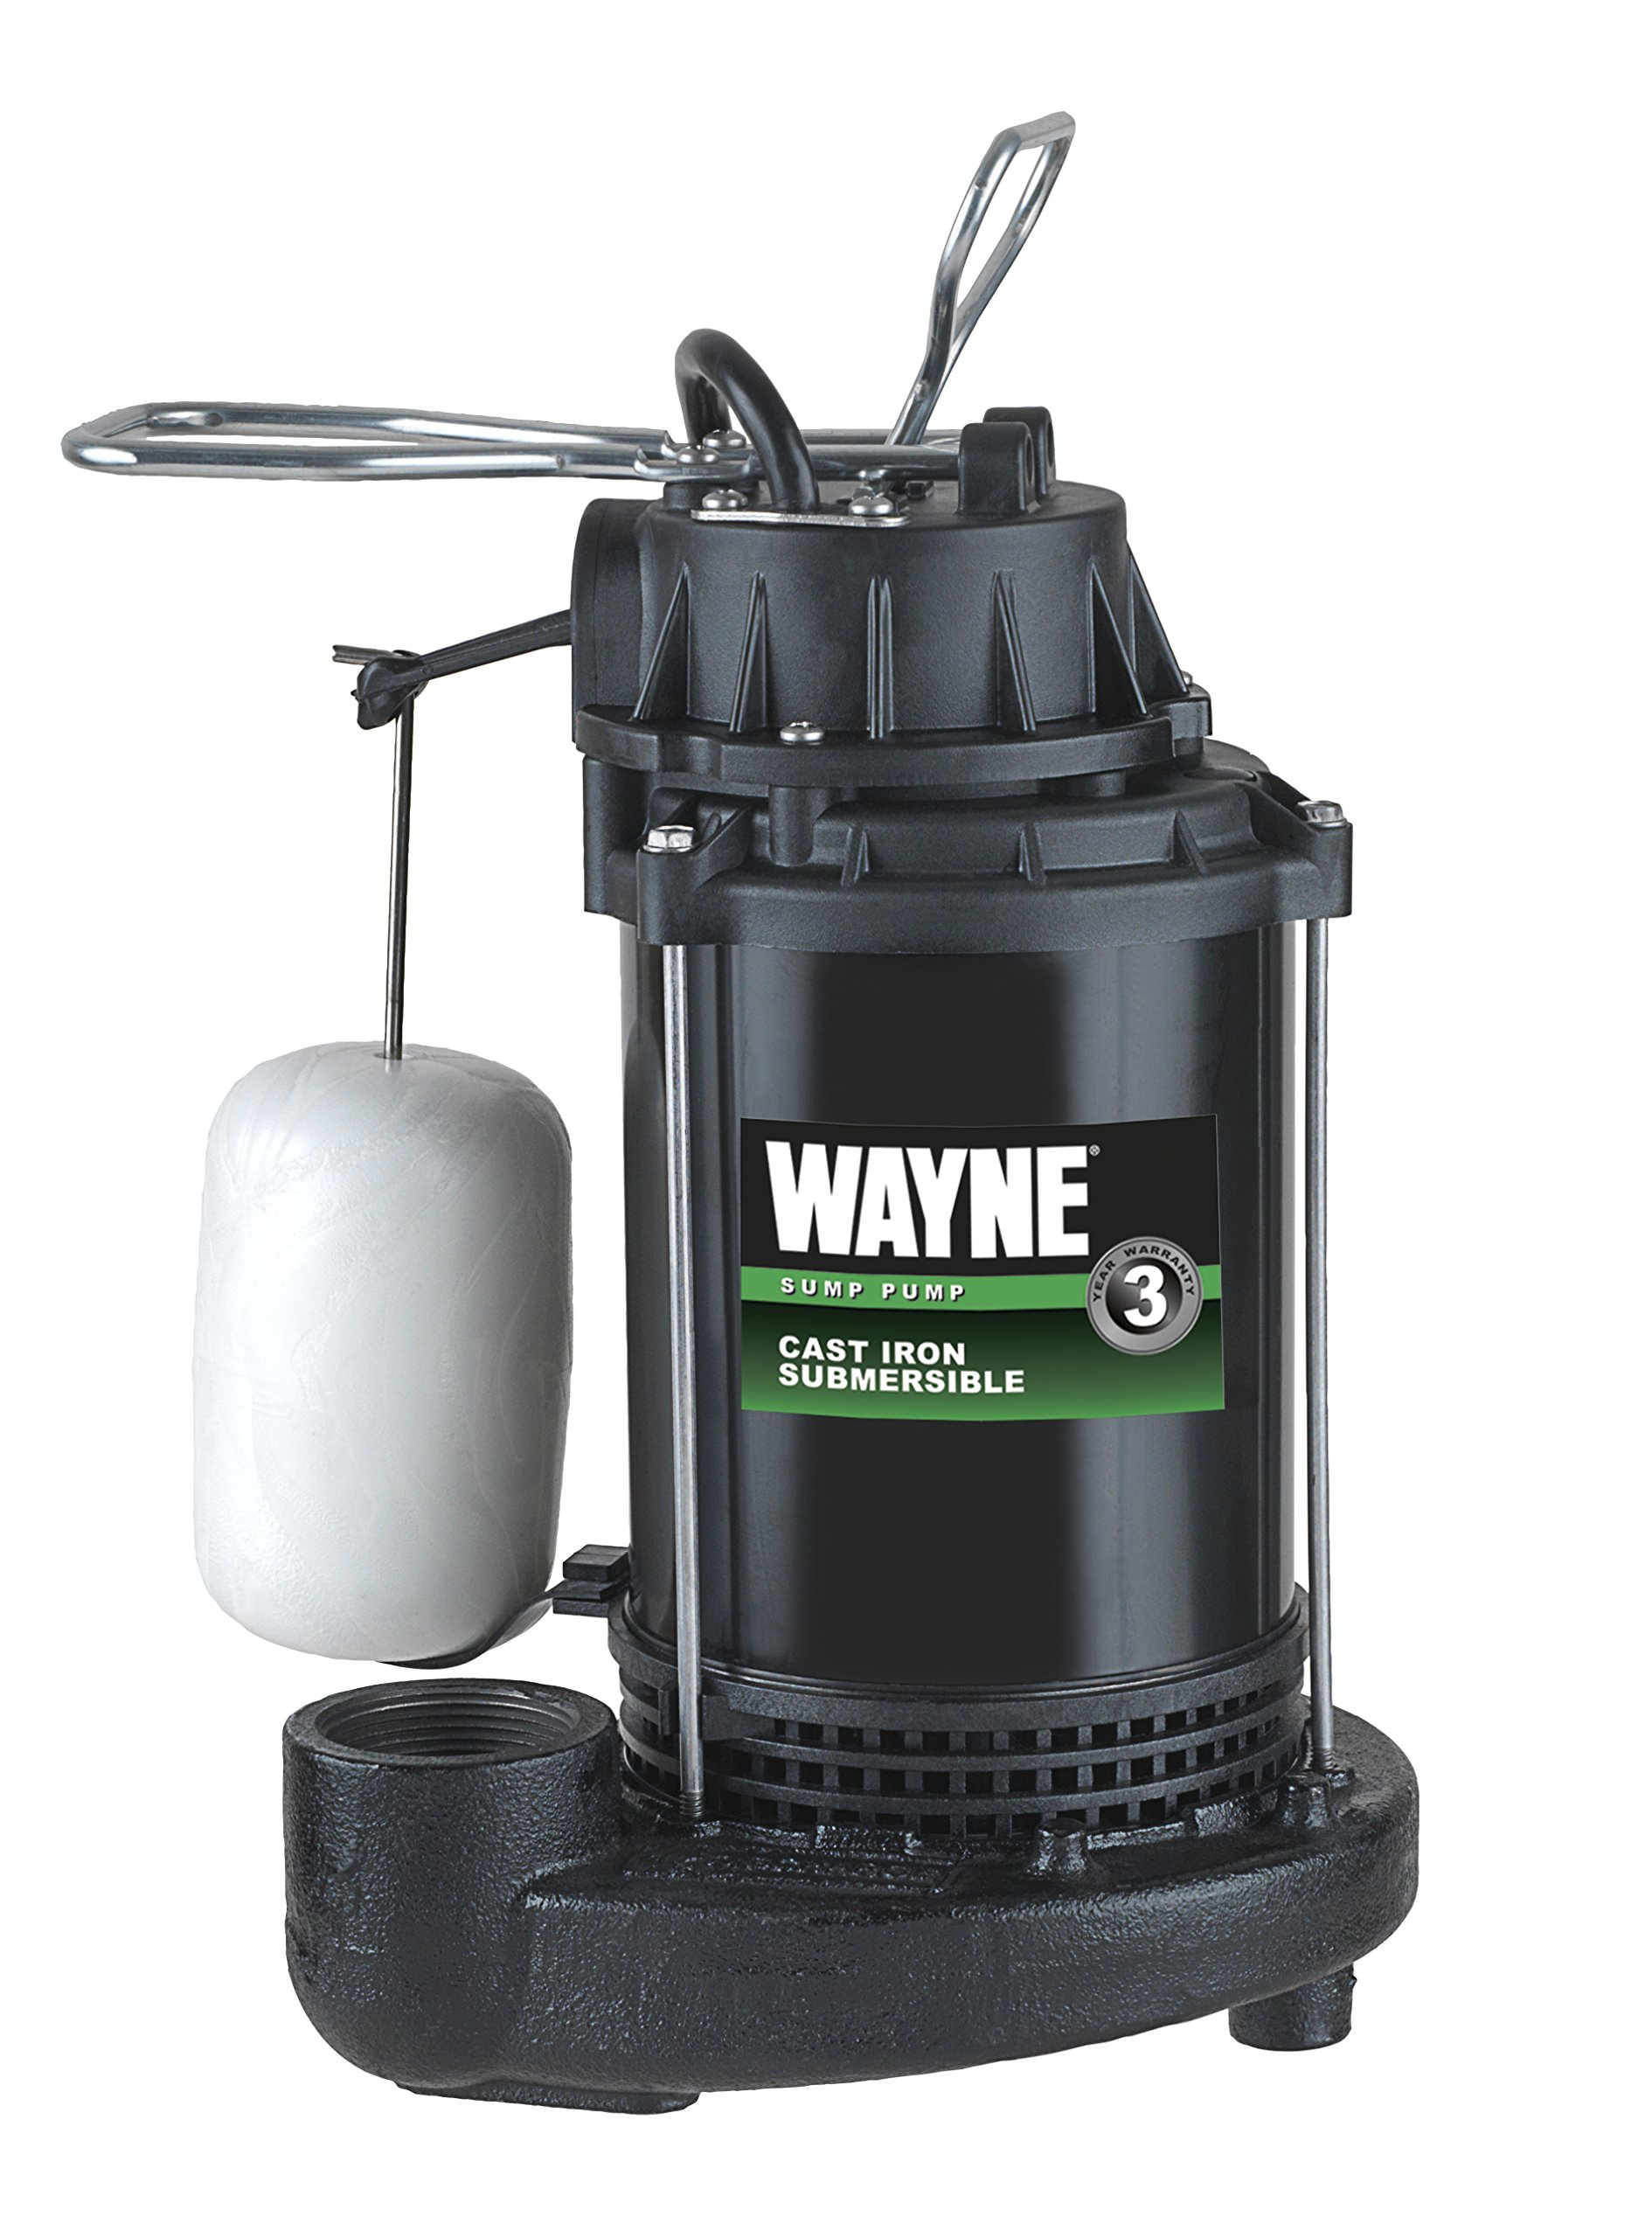 WAYNE CDU800 1/2 HP Submersible Cast Iron and Steel Sump Pump With Integrated Vertical Float Switch by Wayne